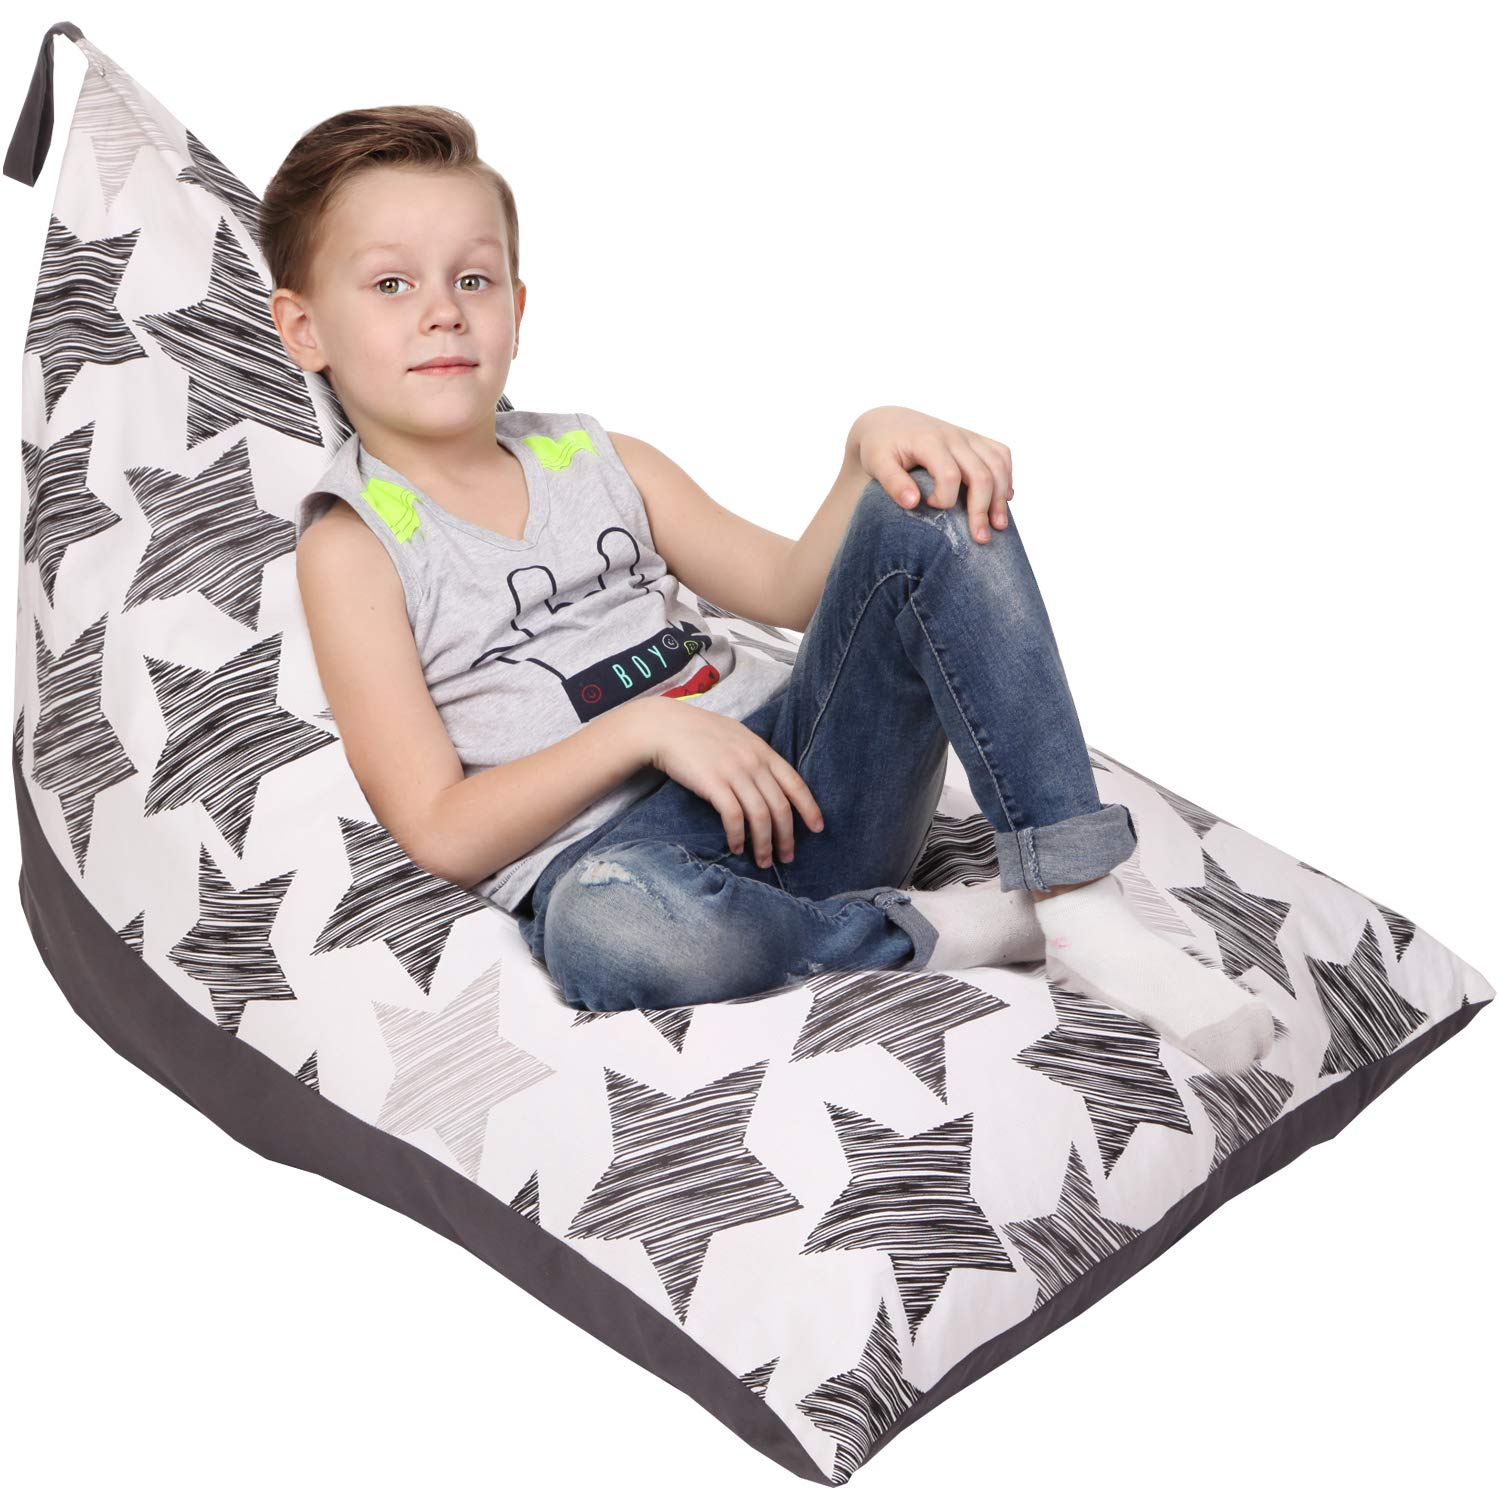 Stuffed Animal Storage Bean Bag - Cover Only - Large Triangle Beanbag Chair for Kids - 180+ Plush Toys Holder - Floor Pillows Organizer for Boys and Girls - 100% Cotton Canvas - Hatch Stars by 5 STARS UNITED